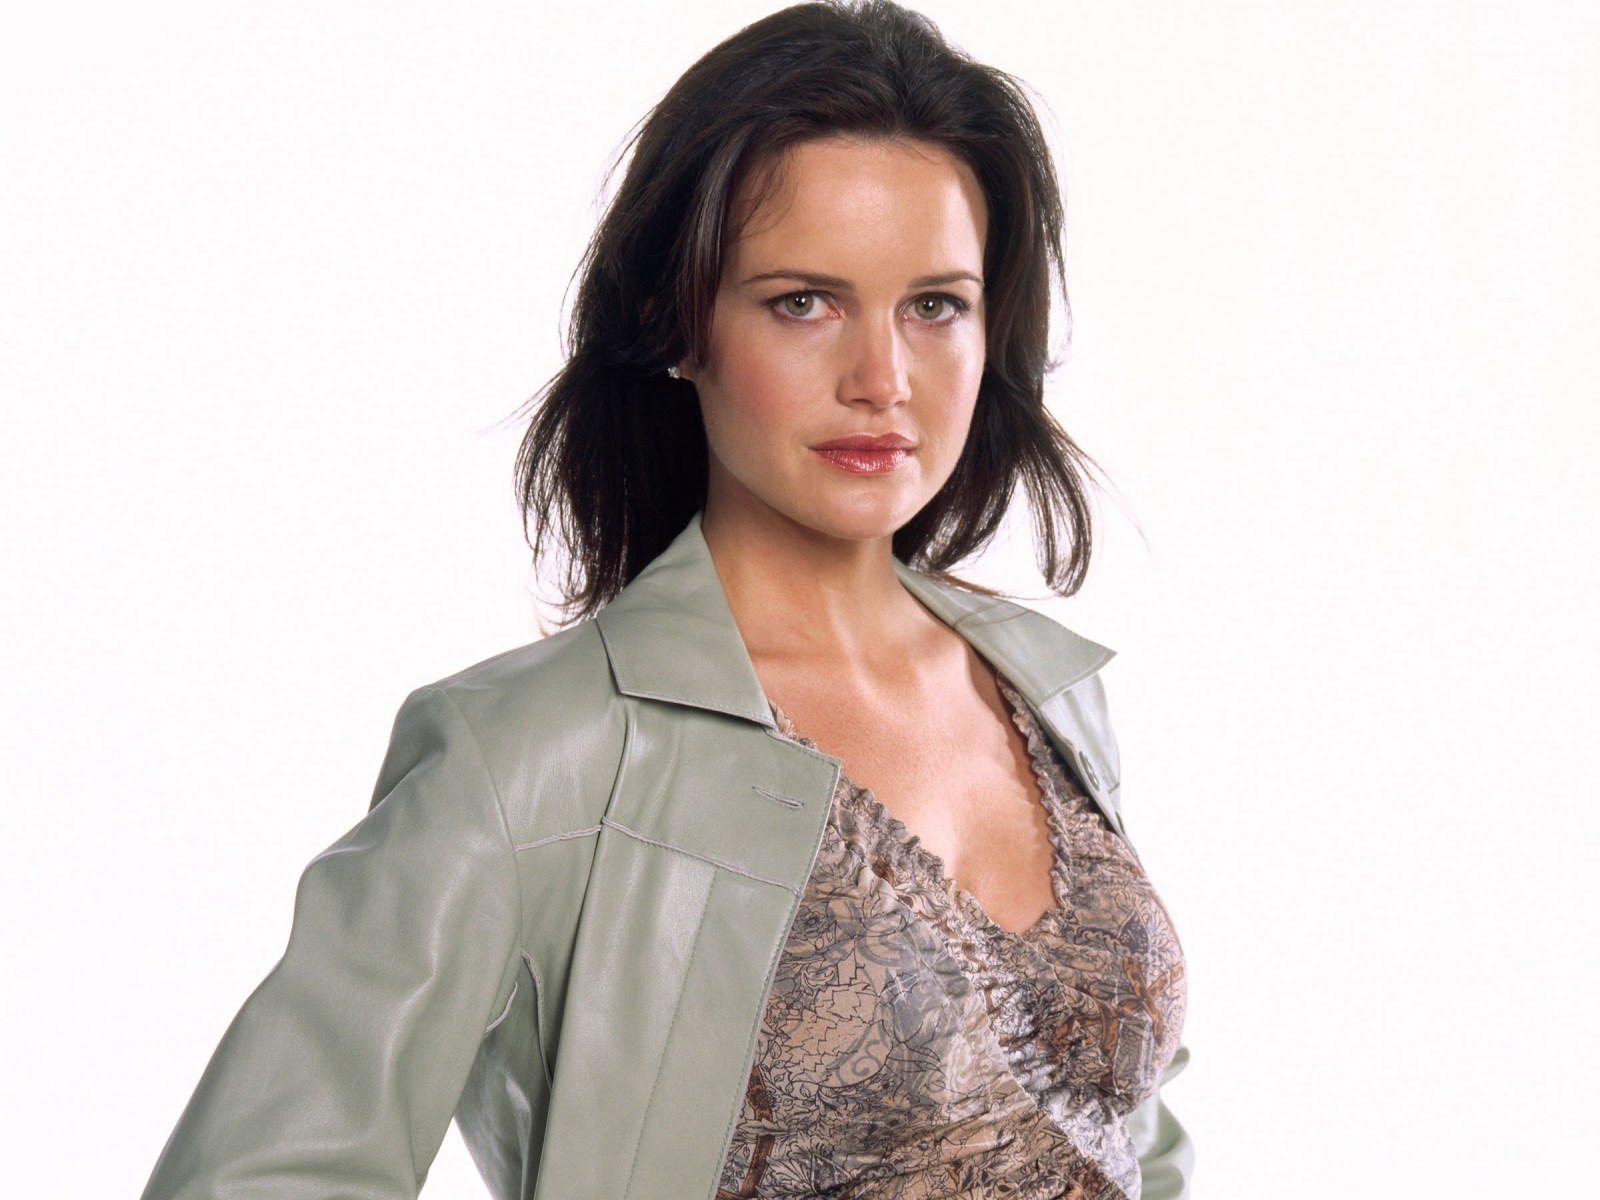 Celebrites Carla Gugino naked (65 photos), Topless, Sideboobs, Twitter, braless 2015